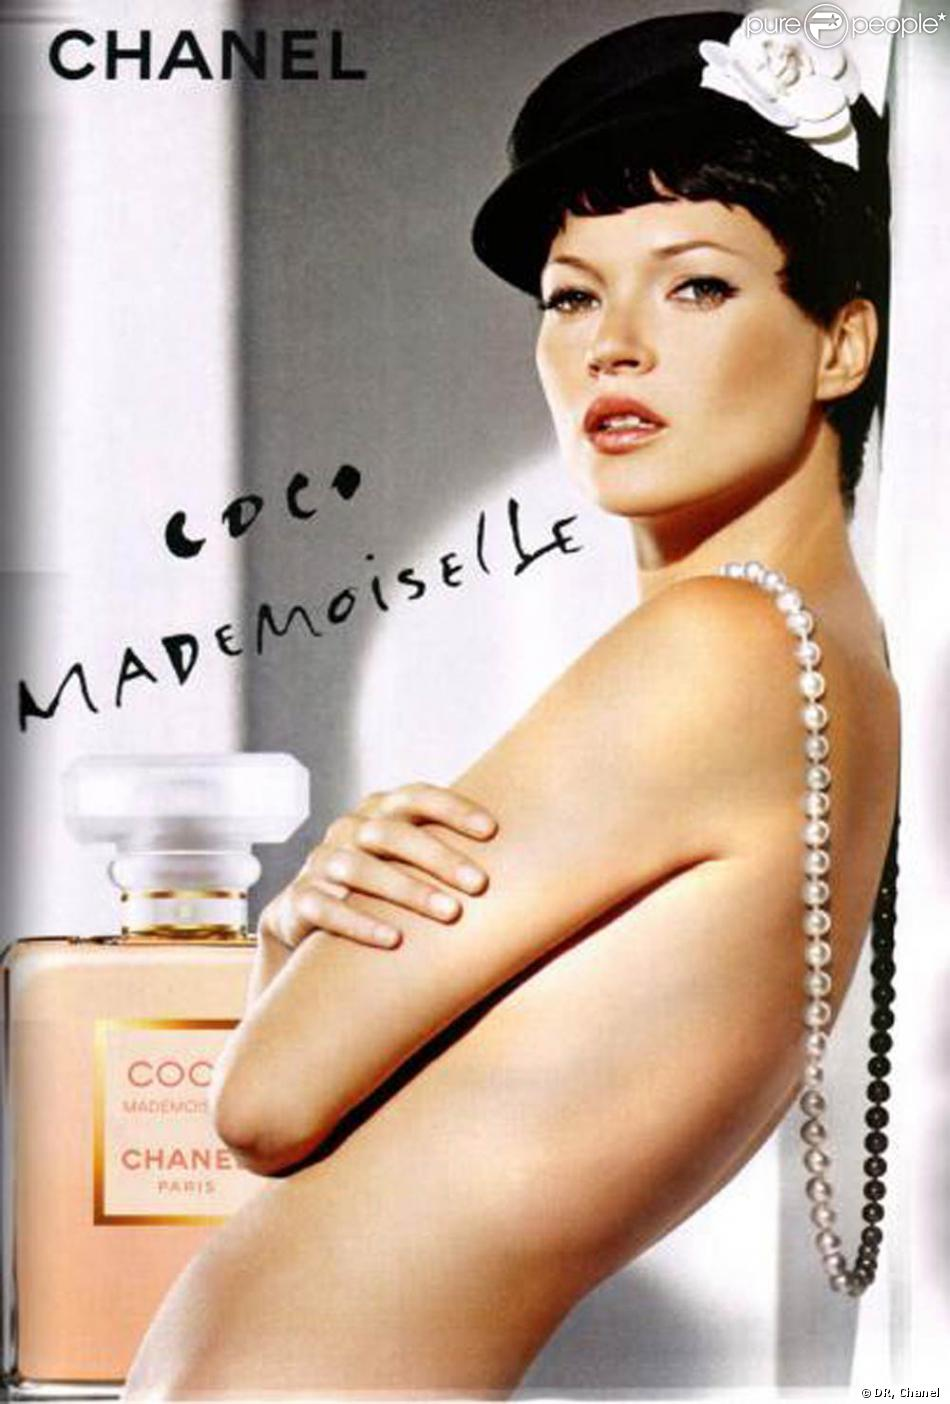 kate moss repr sente le parfum coco mademoiselle. Black Bedroom Furniture Sets. Home Design Ideas